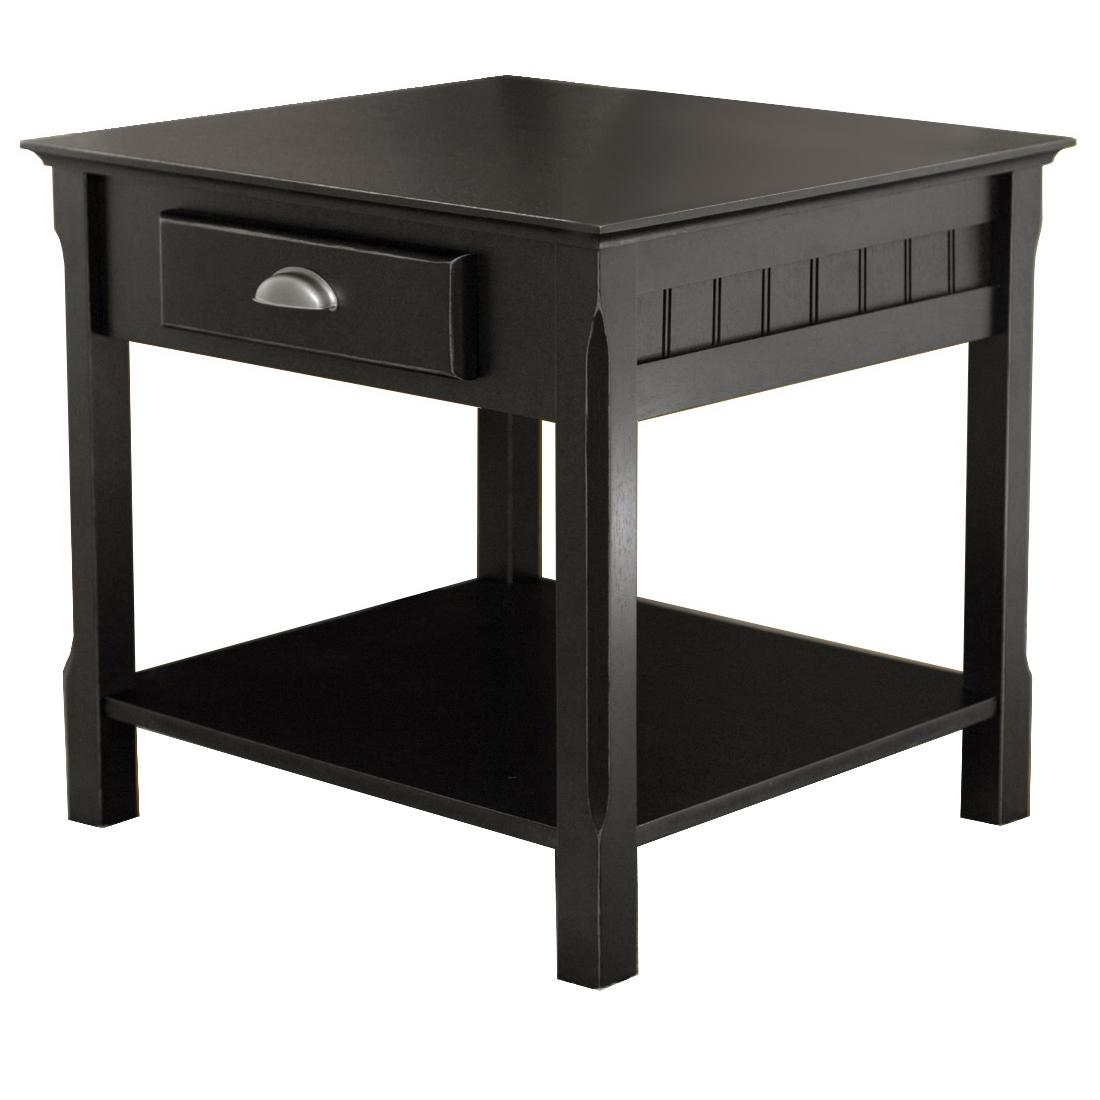 Furniture End Table Height Narrow Tables For Living Room Long Black